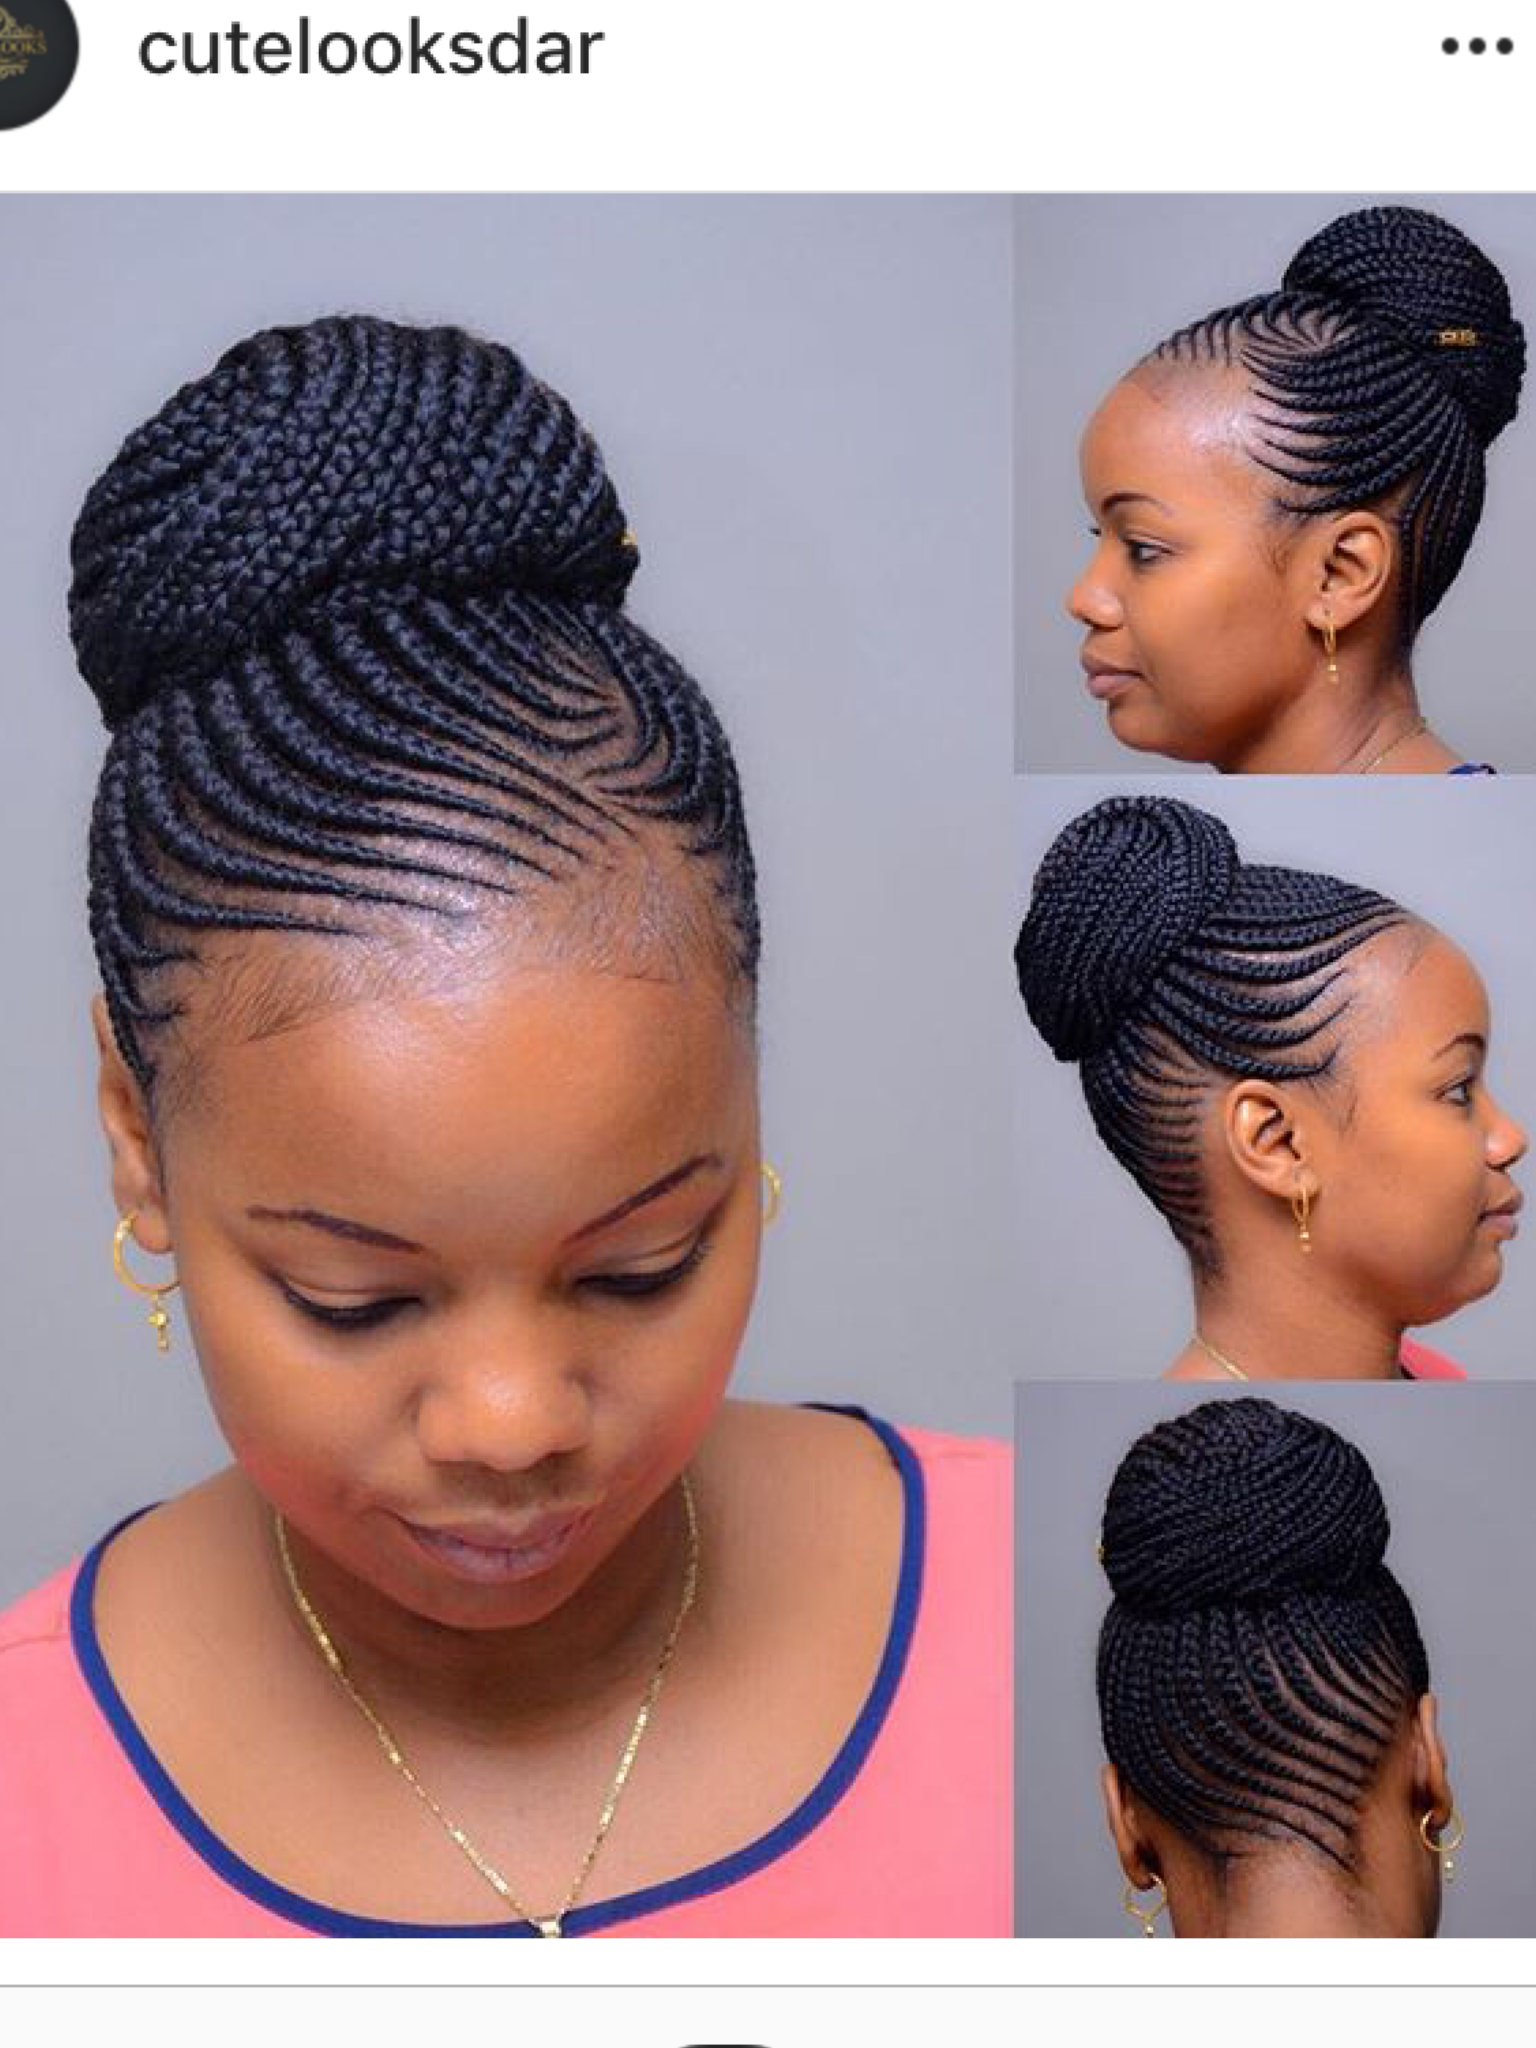 Hairdo African Braids Hairstyles Braided Hairstyles Updo Cornrow Hairstyles